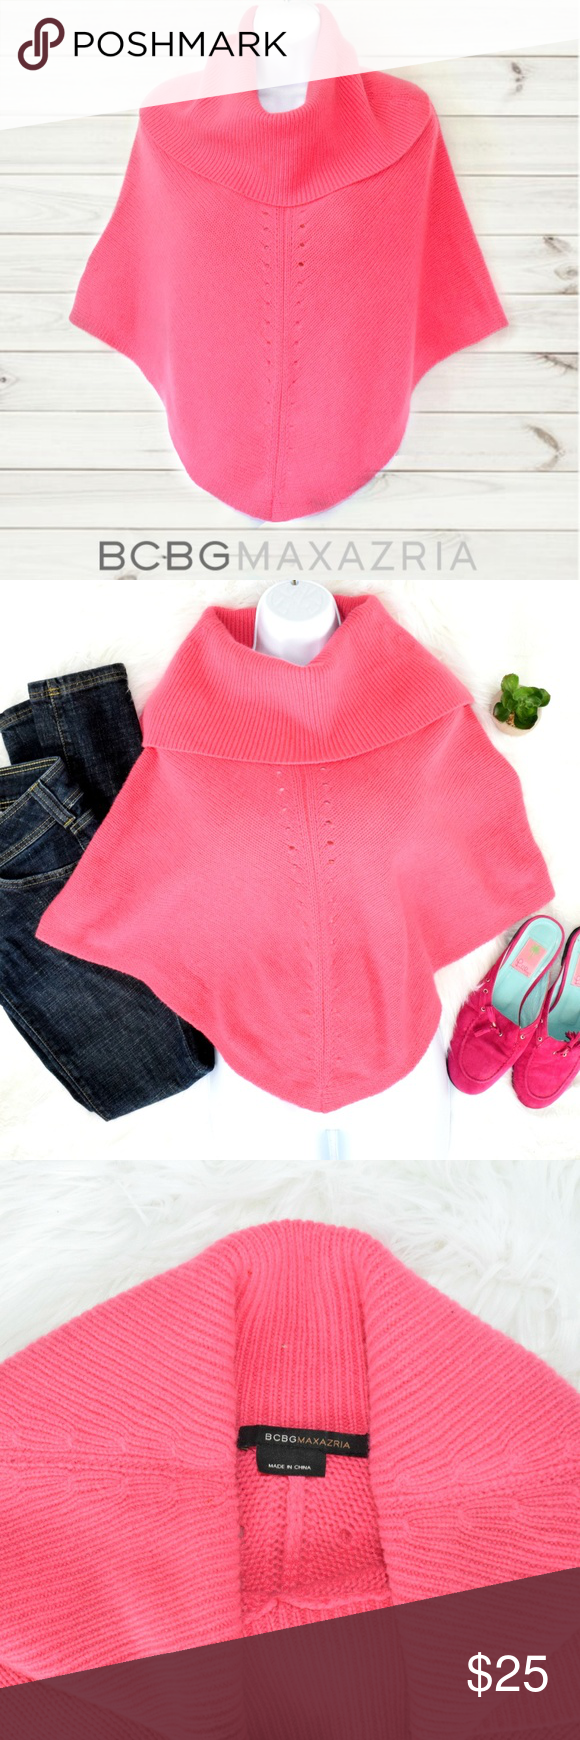 """BCBG Pink Cashmere Poncho This bright pink 100% cashmere poncho sweater by BCBG MaxAzria will wrap you in comfort and luxury. Wide cowl collar.  Lenght: Approx 28"""" neck to point hem. On me (5'4) the point of the hem come to my inseam, the """"sleeves"""" about 3/4 length. There is no official size, but I'd consider it a small to medium.  *There is a dime-sized repair stitch about three inches up from the right """"sleeve"""" hem. See pic. Priced accordingly. BCBGMaxAzria Sweaters Shrugs & Ponchos"""